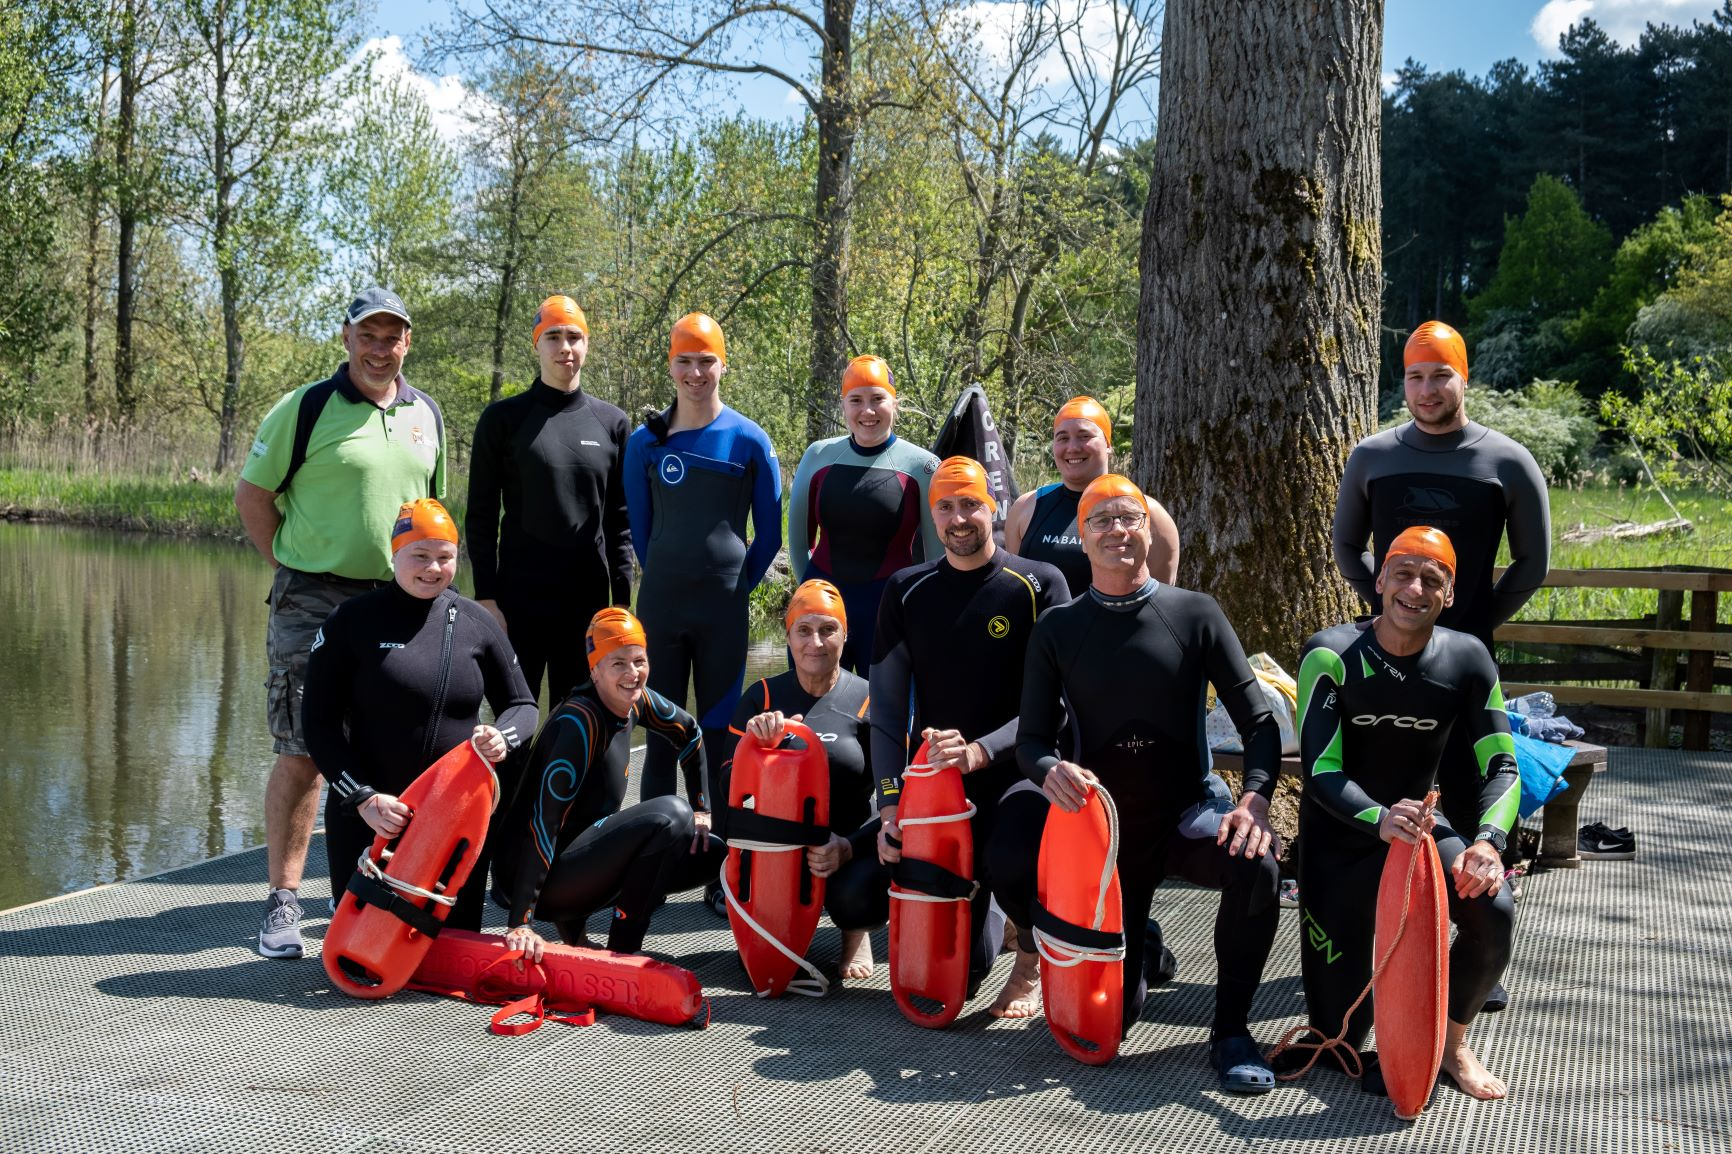 Image showing 11 participants who took part in the lifeguard training